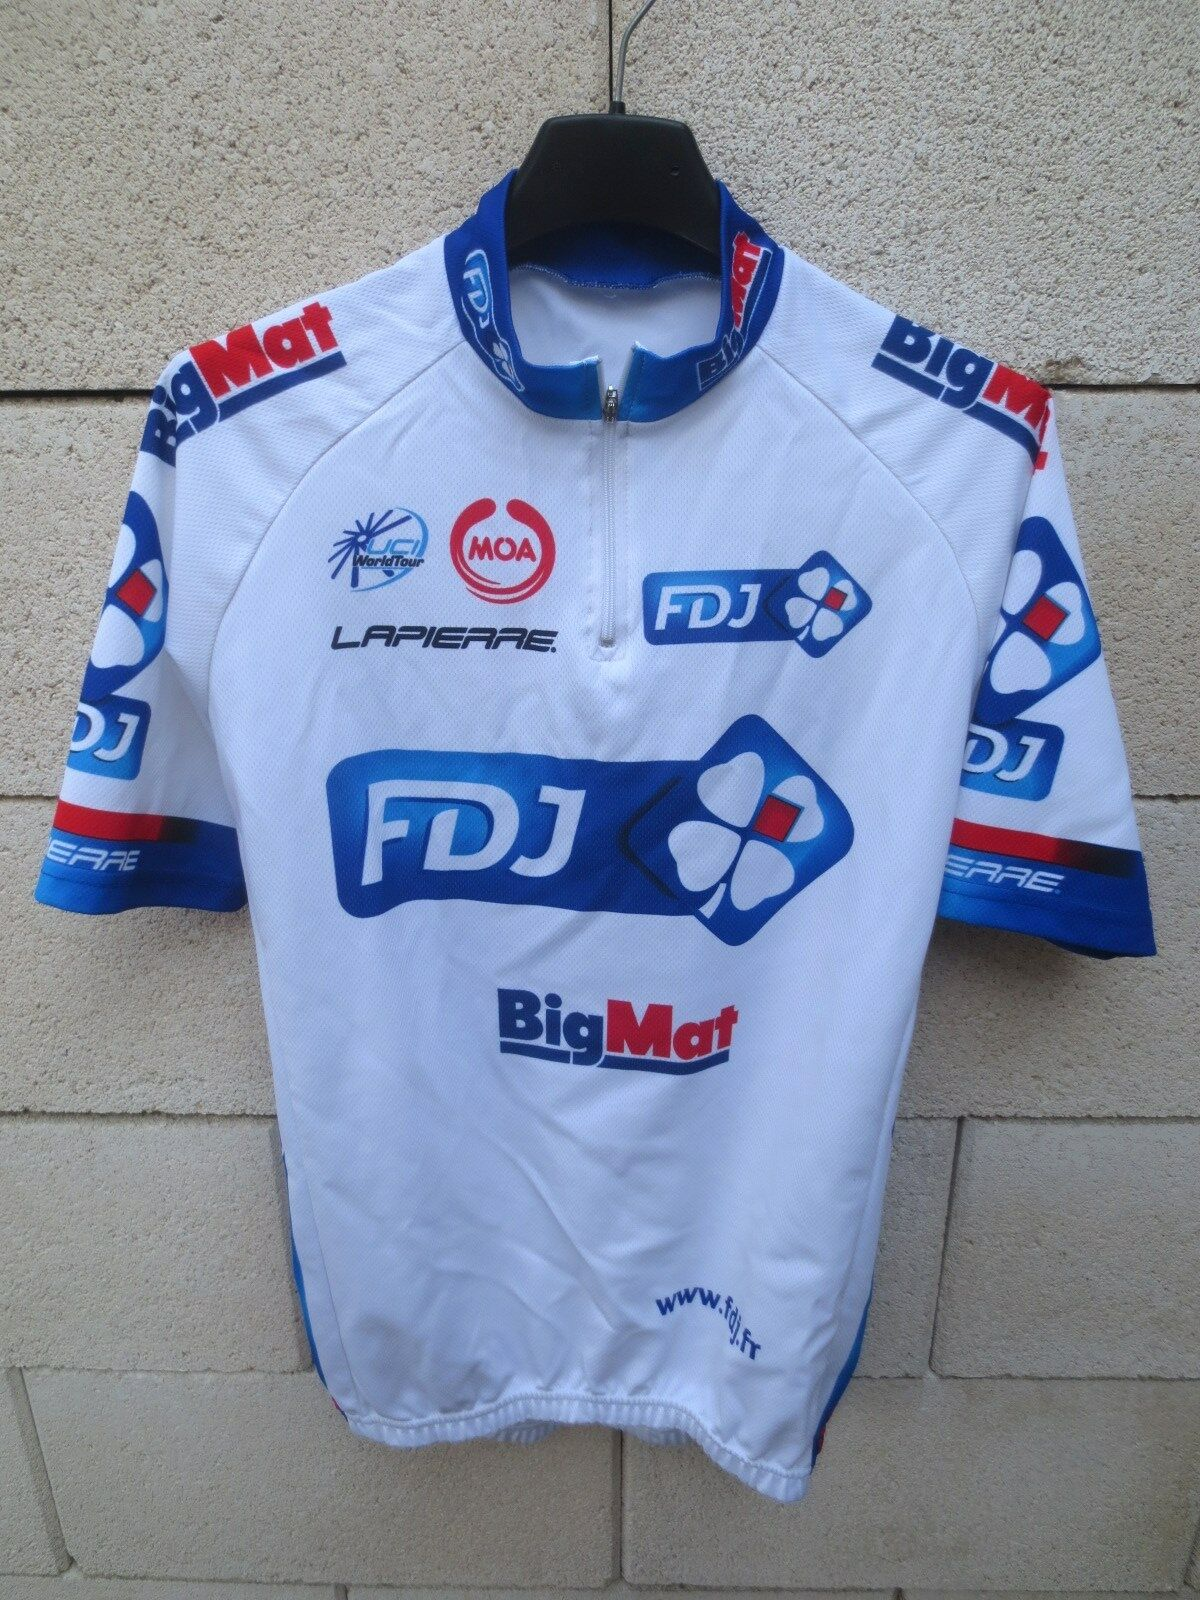 Fdj cycling  jersey big mat 2012 francaise des jeux uci pro tour jersey shirt m  high quality genuine